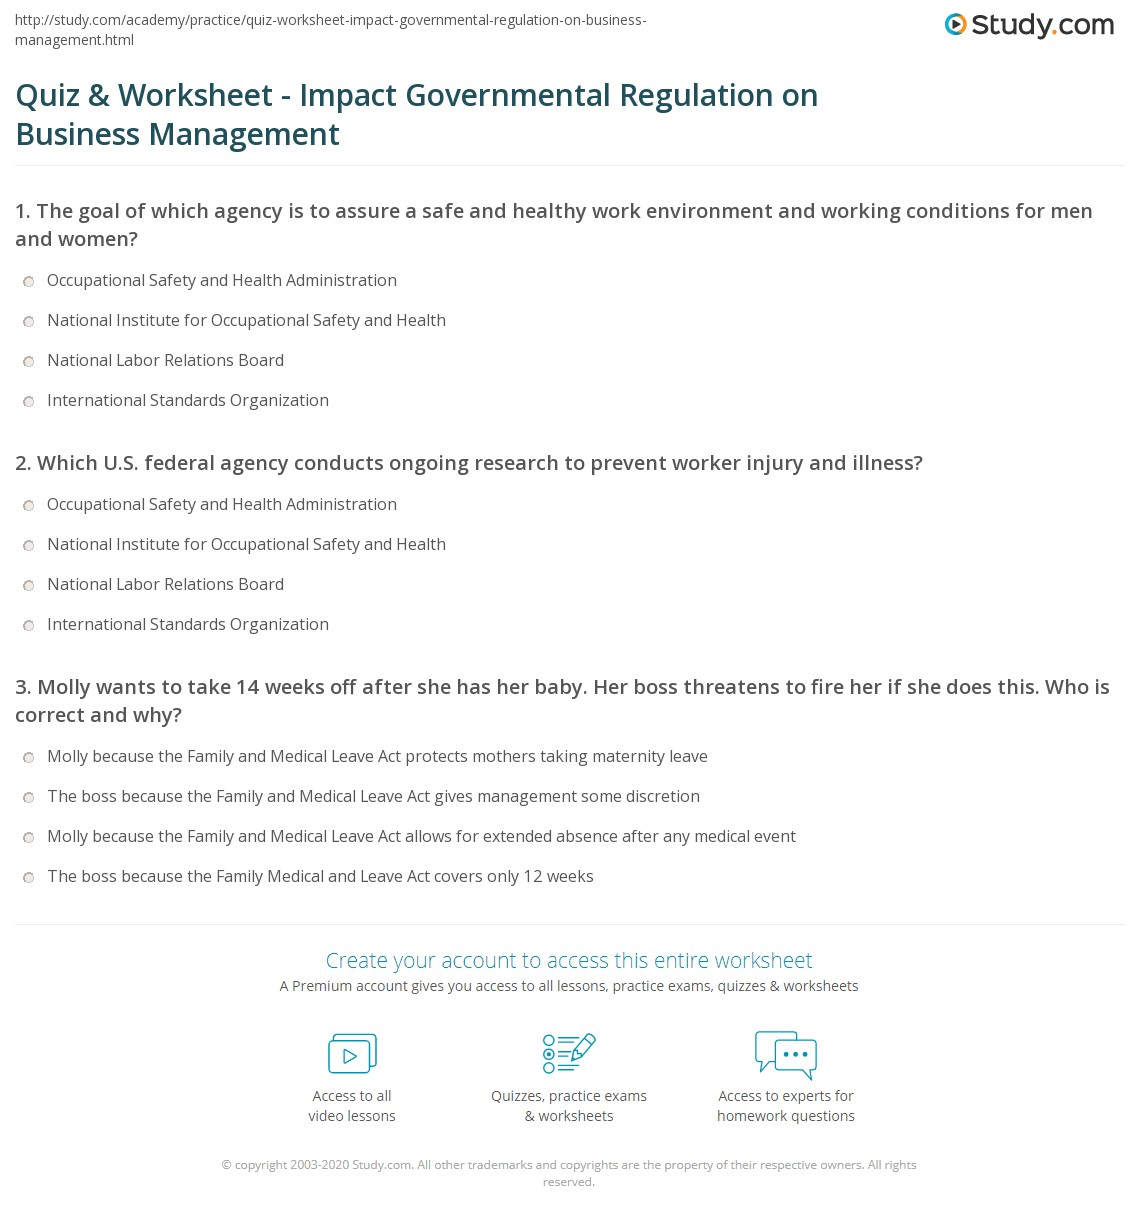 Quiz Worksheet Impact Governmental Regulation On Business